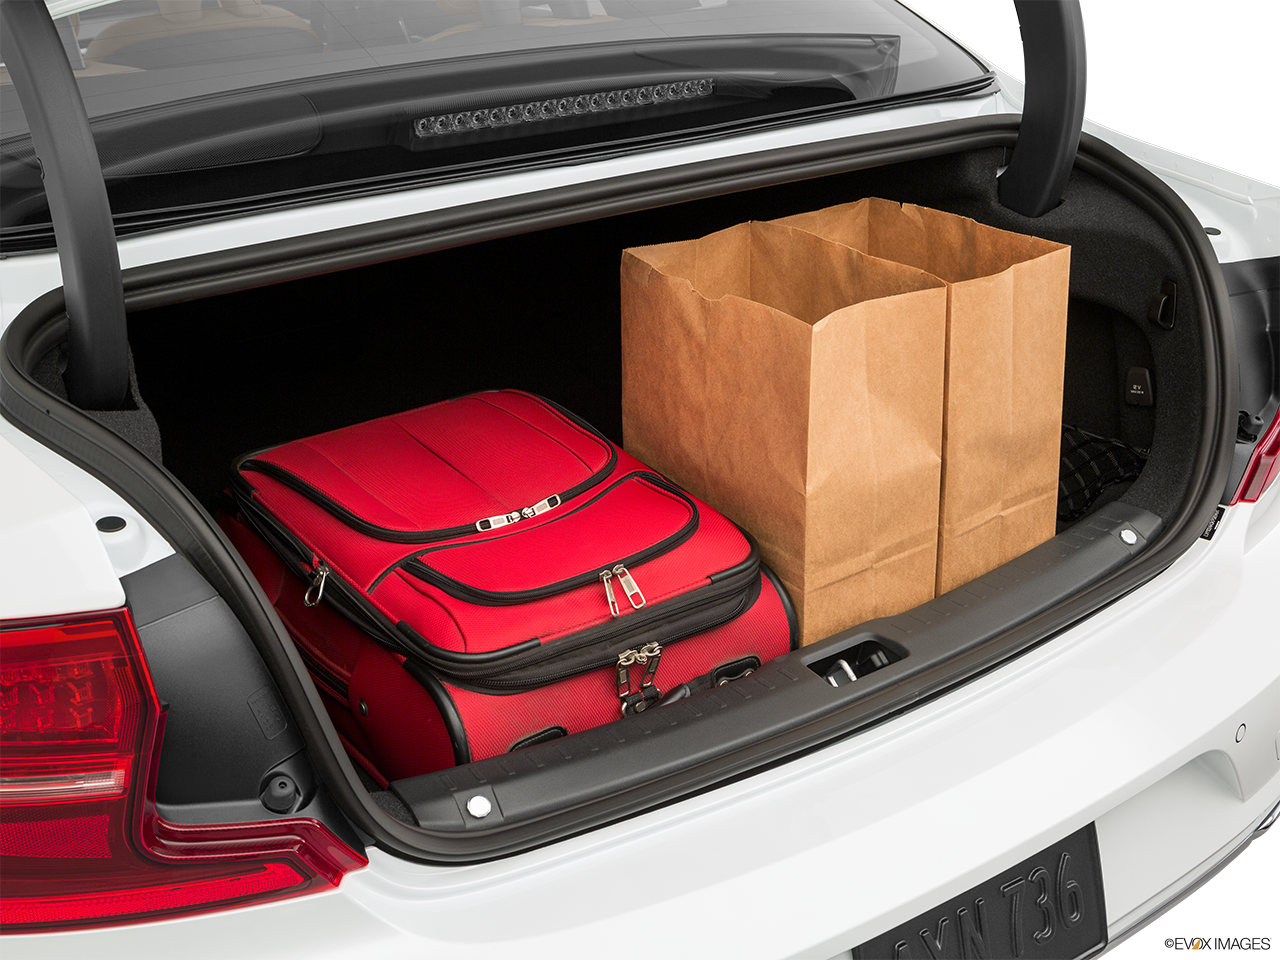 Trunk view of the Volvo S90 PHEV